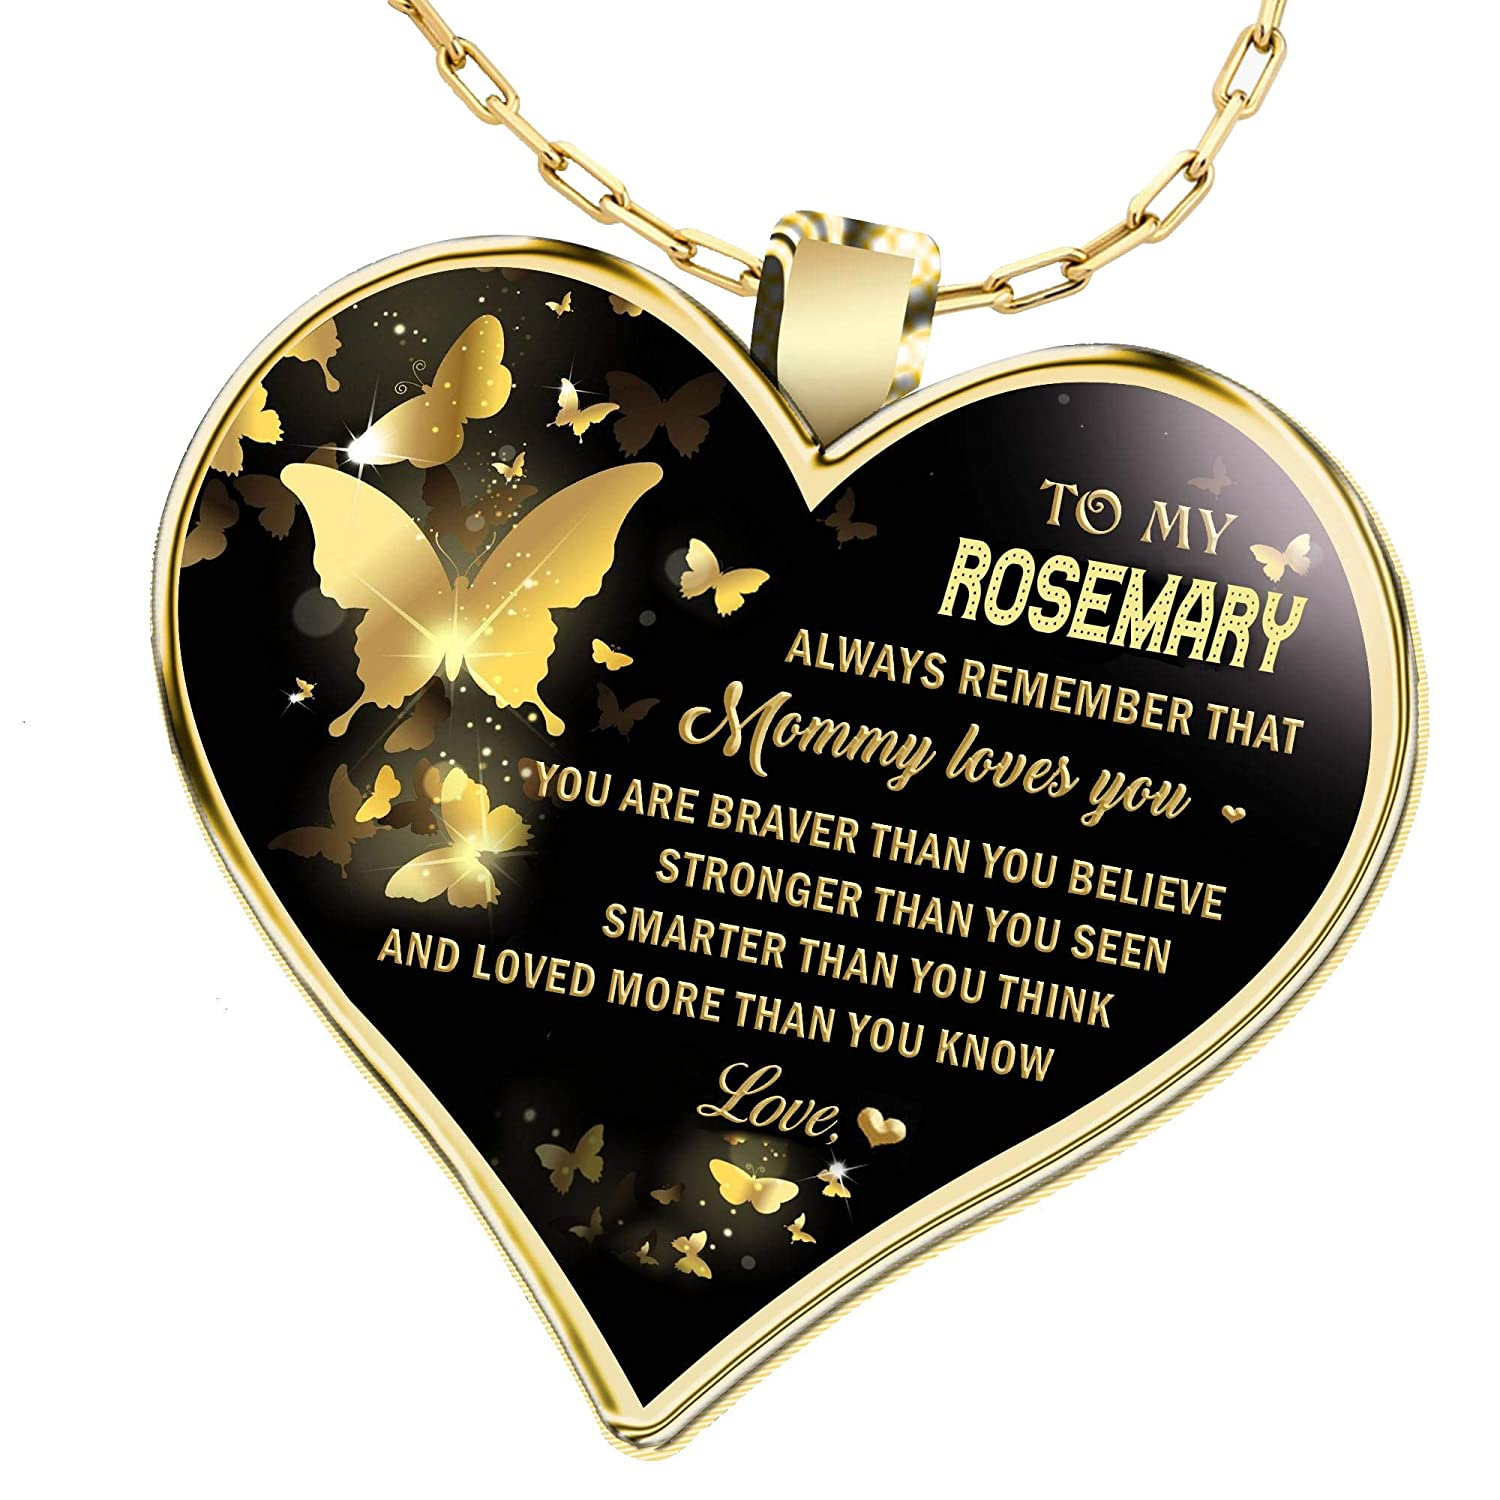 Rosemary v01-18k Gold Finished Heart Pendant Luxury Necklace Personalized Name Gifts